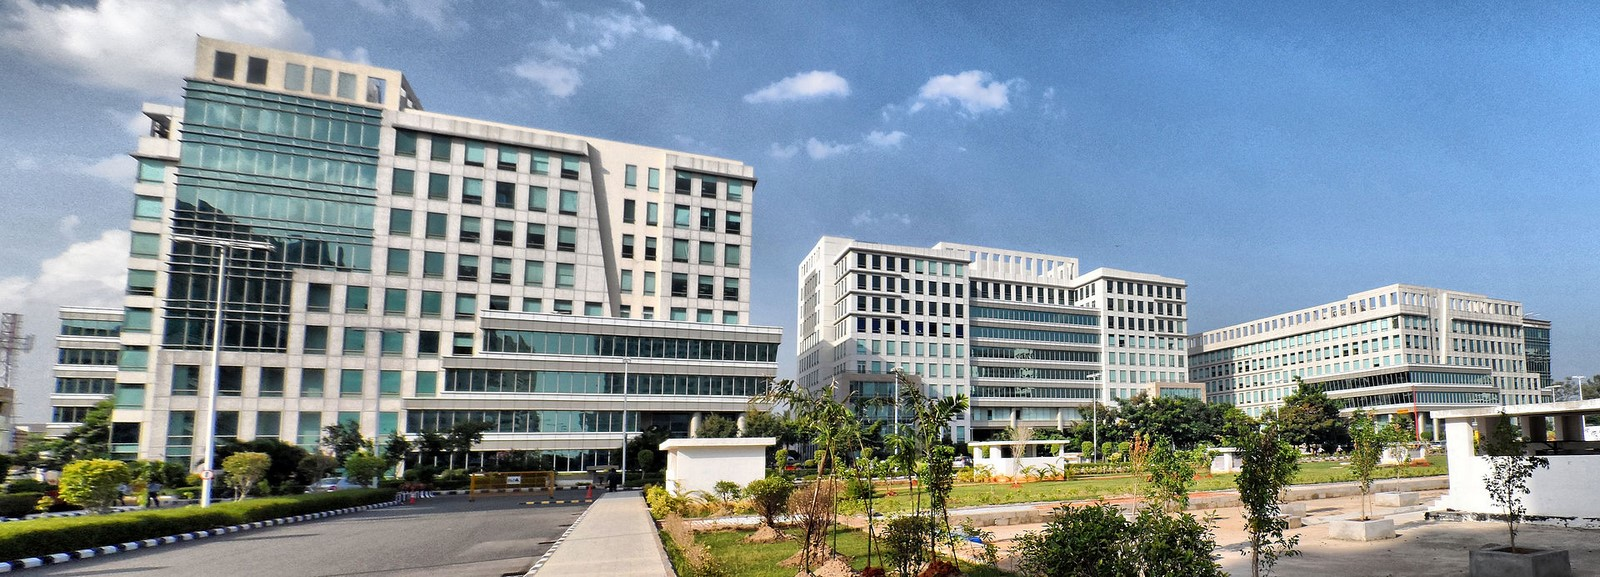 DLF Cyber City, Chennai by Hafeez Contractor: New Generation Offices Sheet1